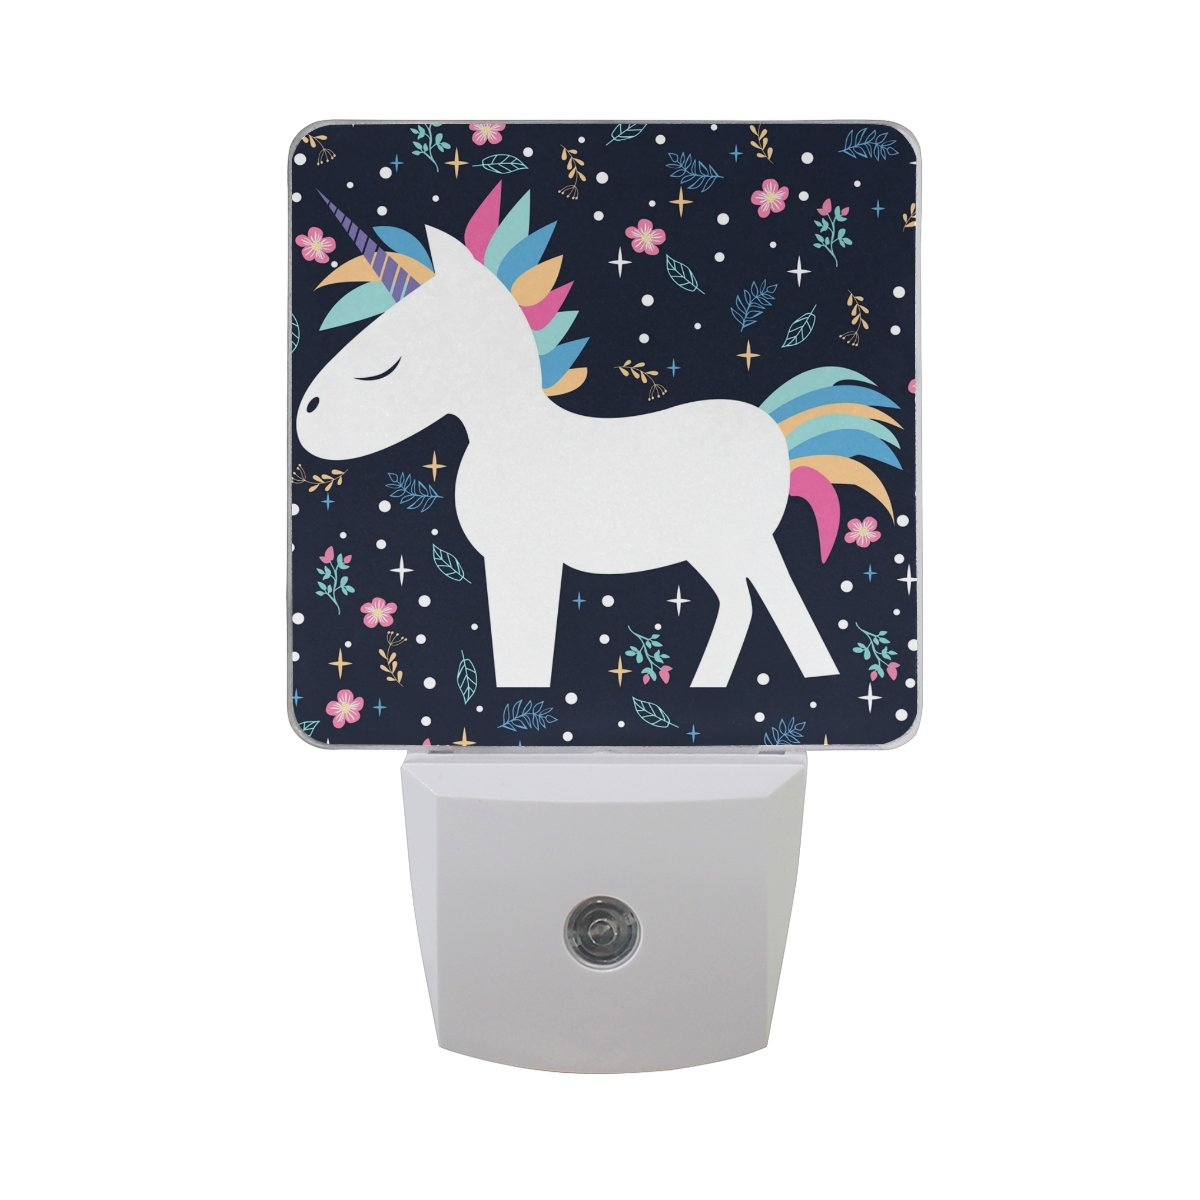 JOYPRINT Led Night Light Cute Floral Animal Unicorn, Auto Senor Dusk to Dawn Night Light Plug in for Kids Baby Girls Boys Adults Room